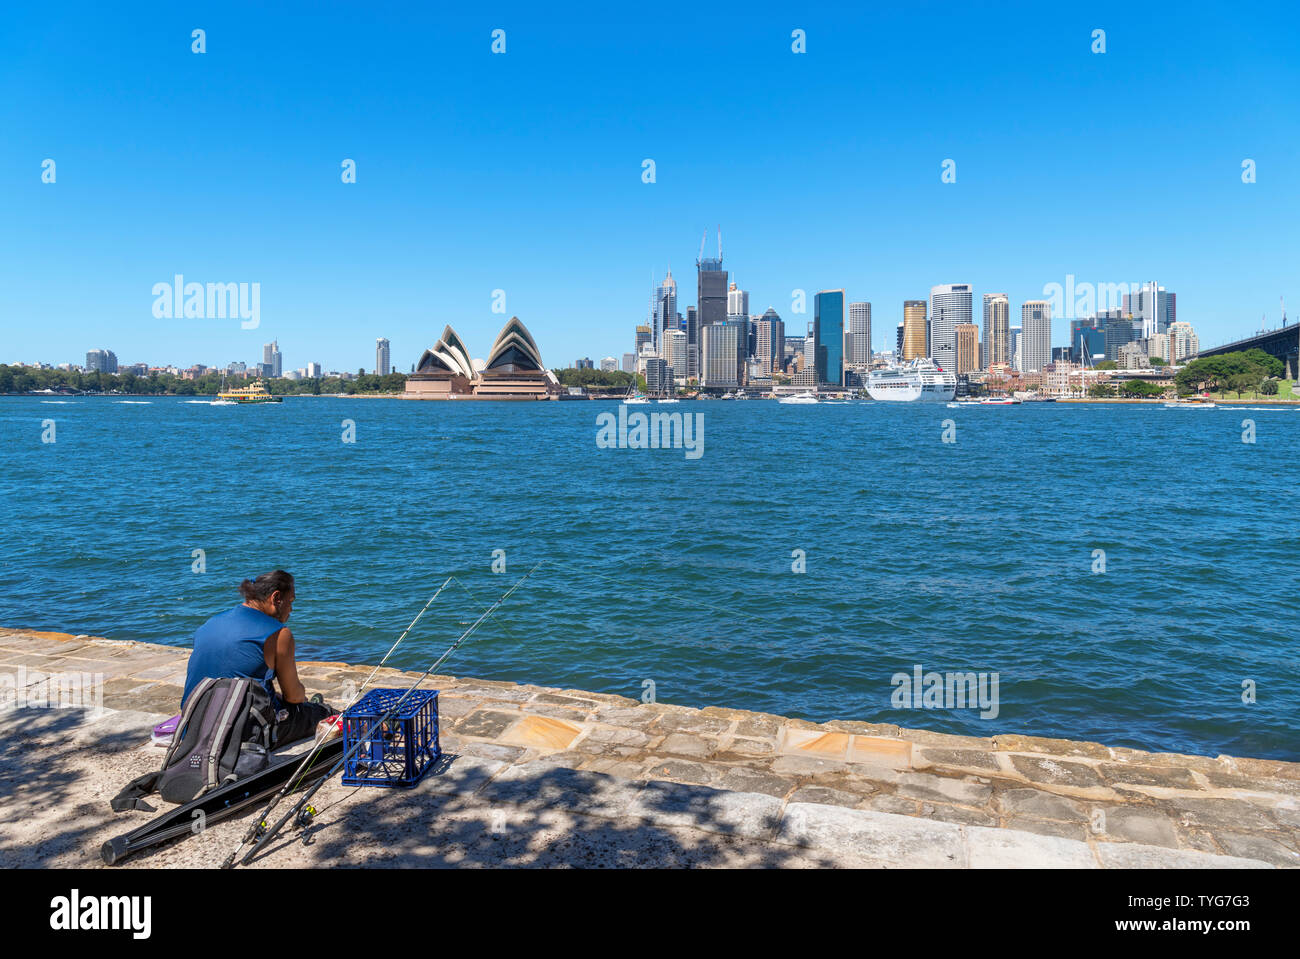 Angler fishing from the waterfront in Kirribilli in front of the Central Business District and Opera House, Sydney, New South Wales, Australia - Stock Image